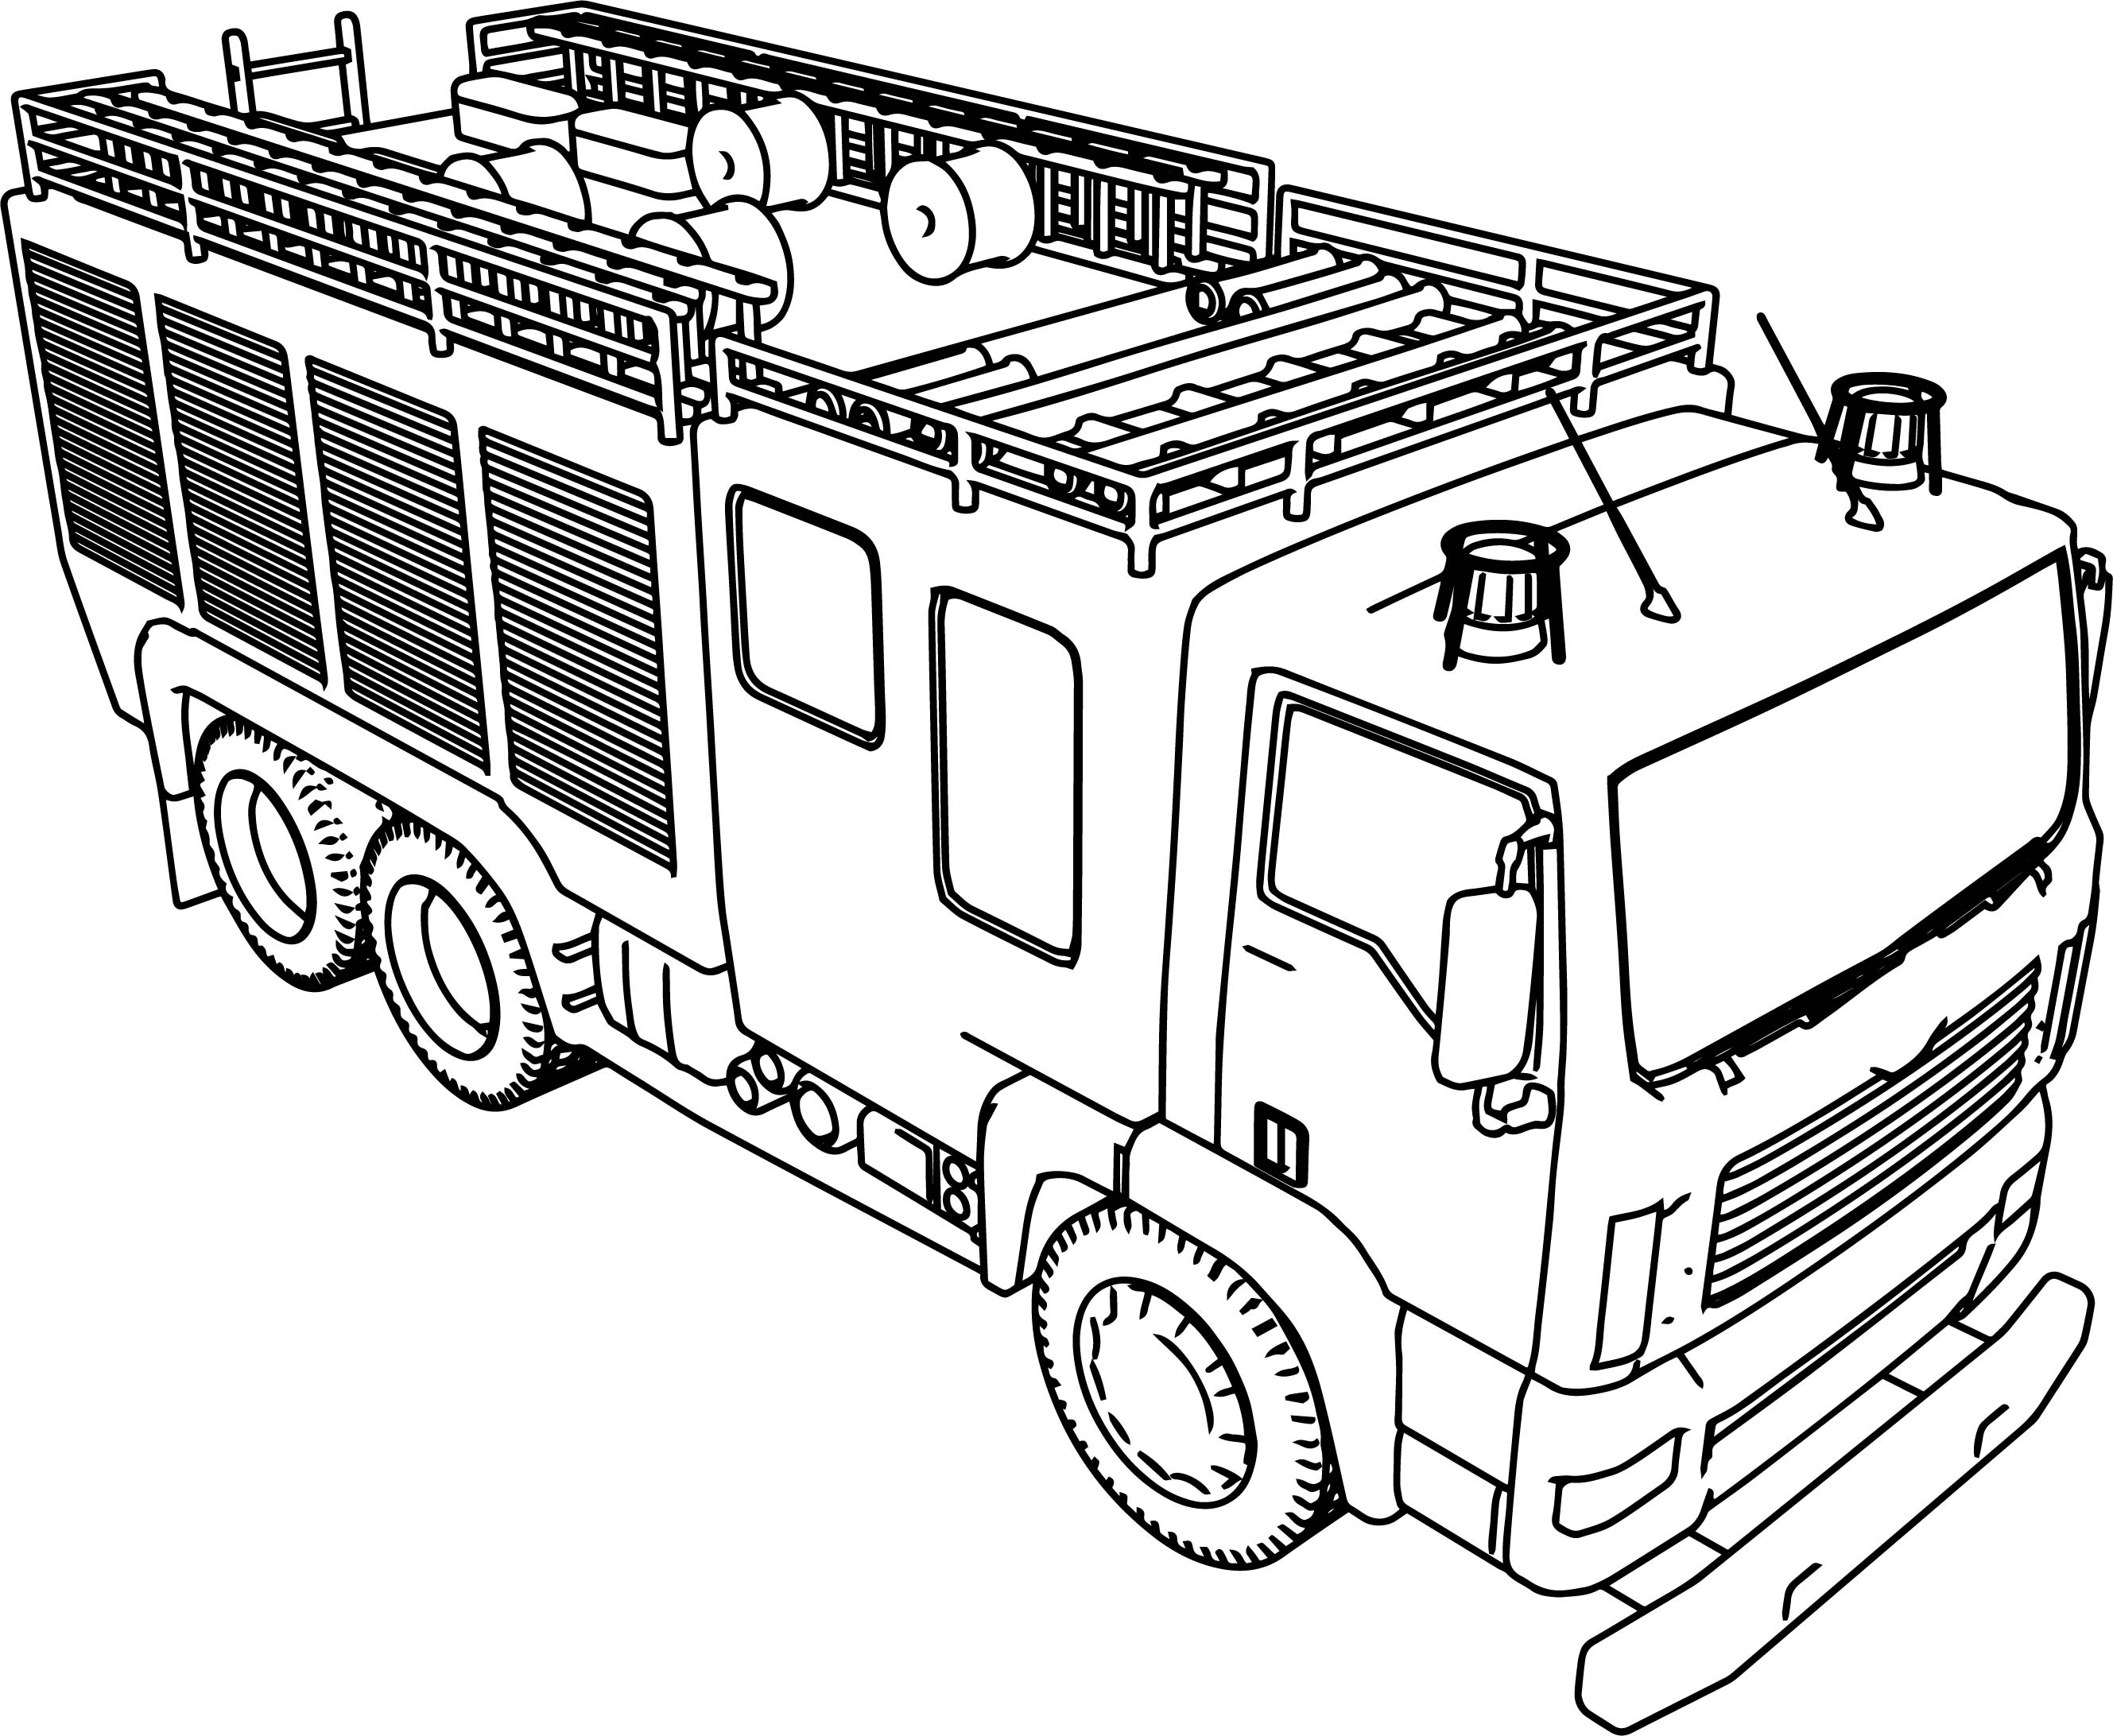 fire truck color page - big fire truck coloring page